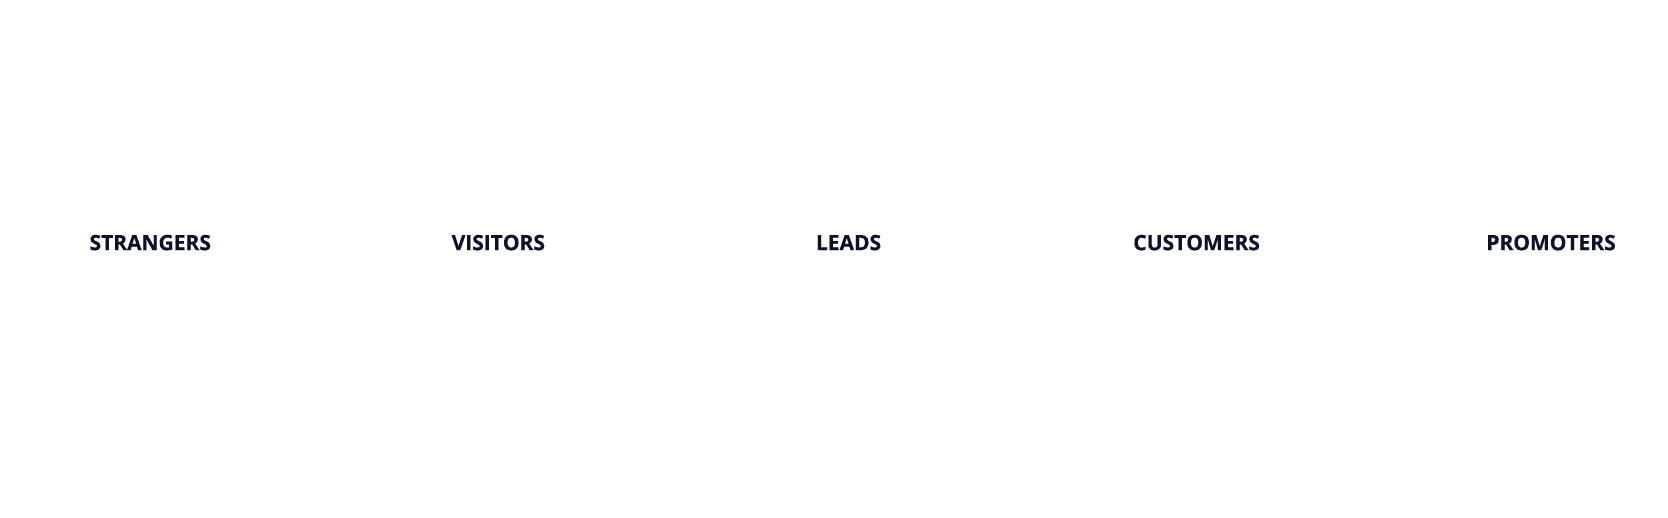 Inbound Marketing Methodology graphic